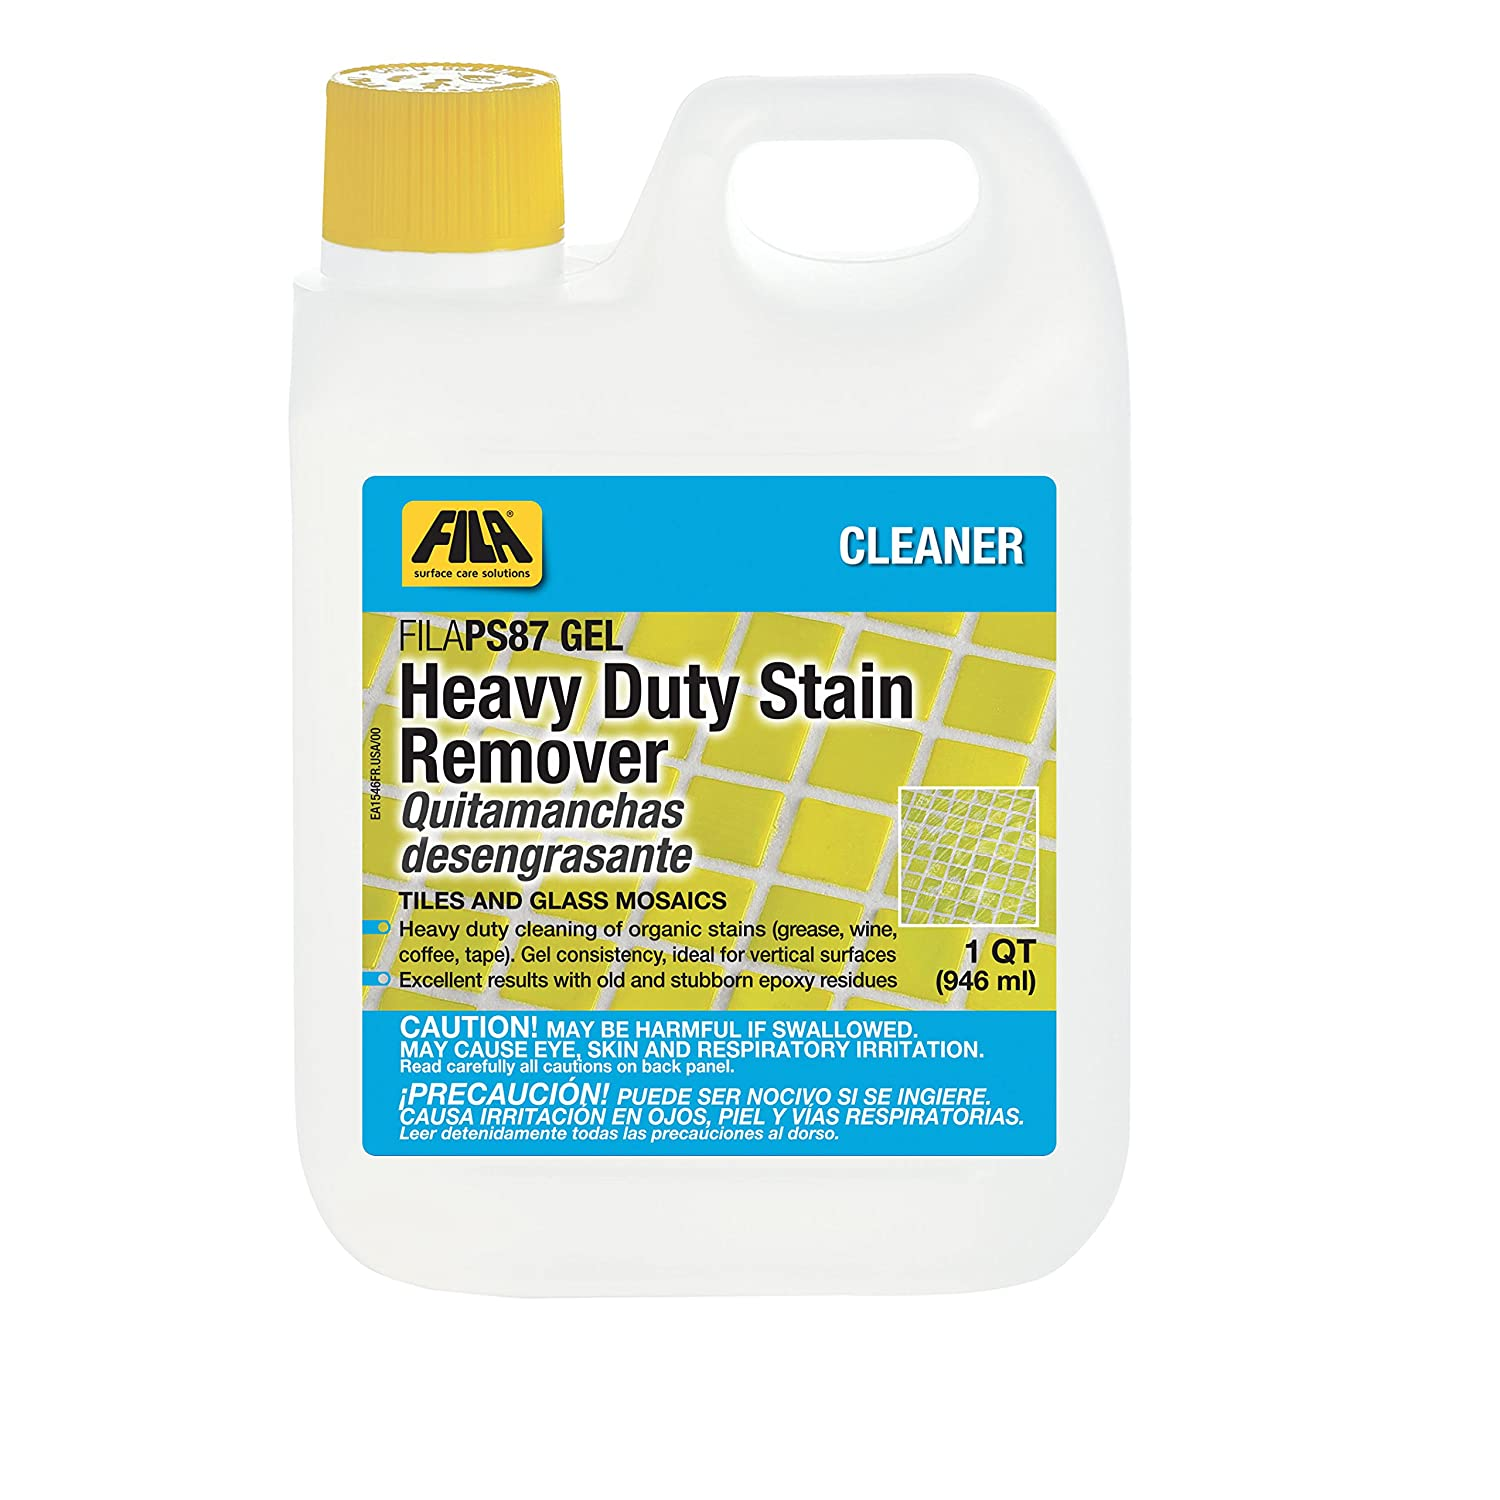 FILA Heavy Duty Stain Remover PS87 Gel 1 QT, Epoxy Grout Haze Remover, Stain Remover for Wine, Grease, Coffee and other food stains, ideal for Porcelain Tile, Ceramic Tile, Glass Mosaic. 44010312